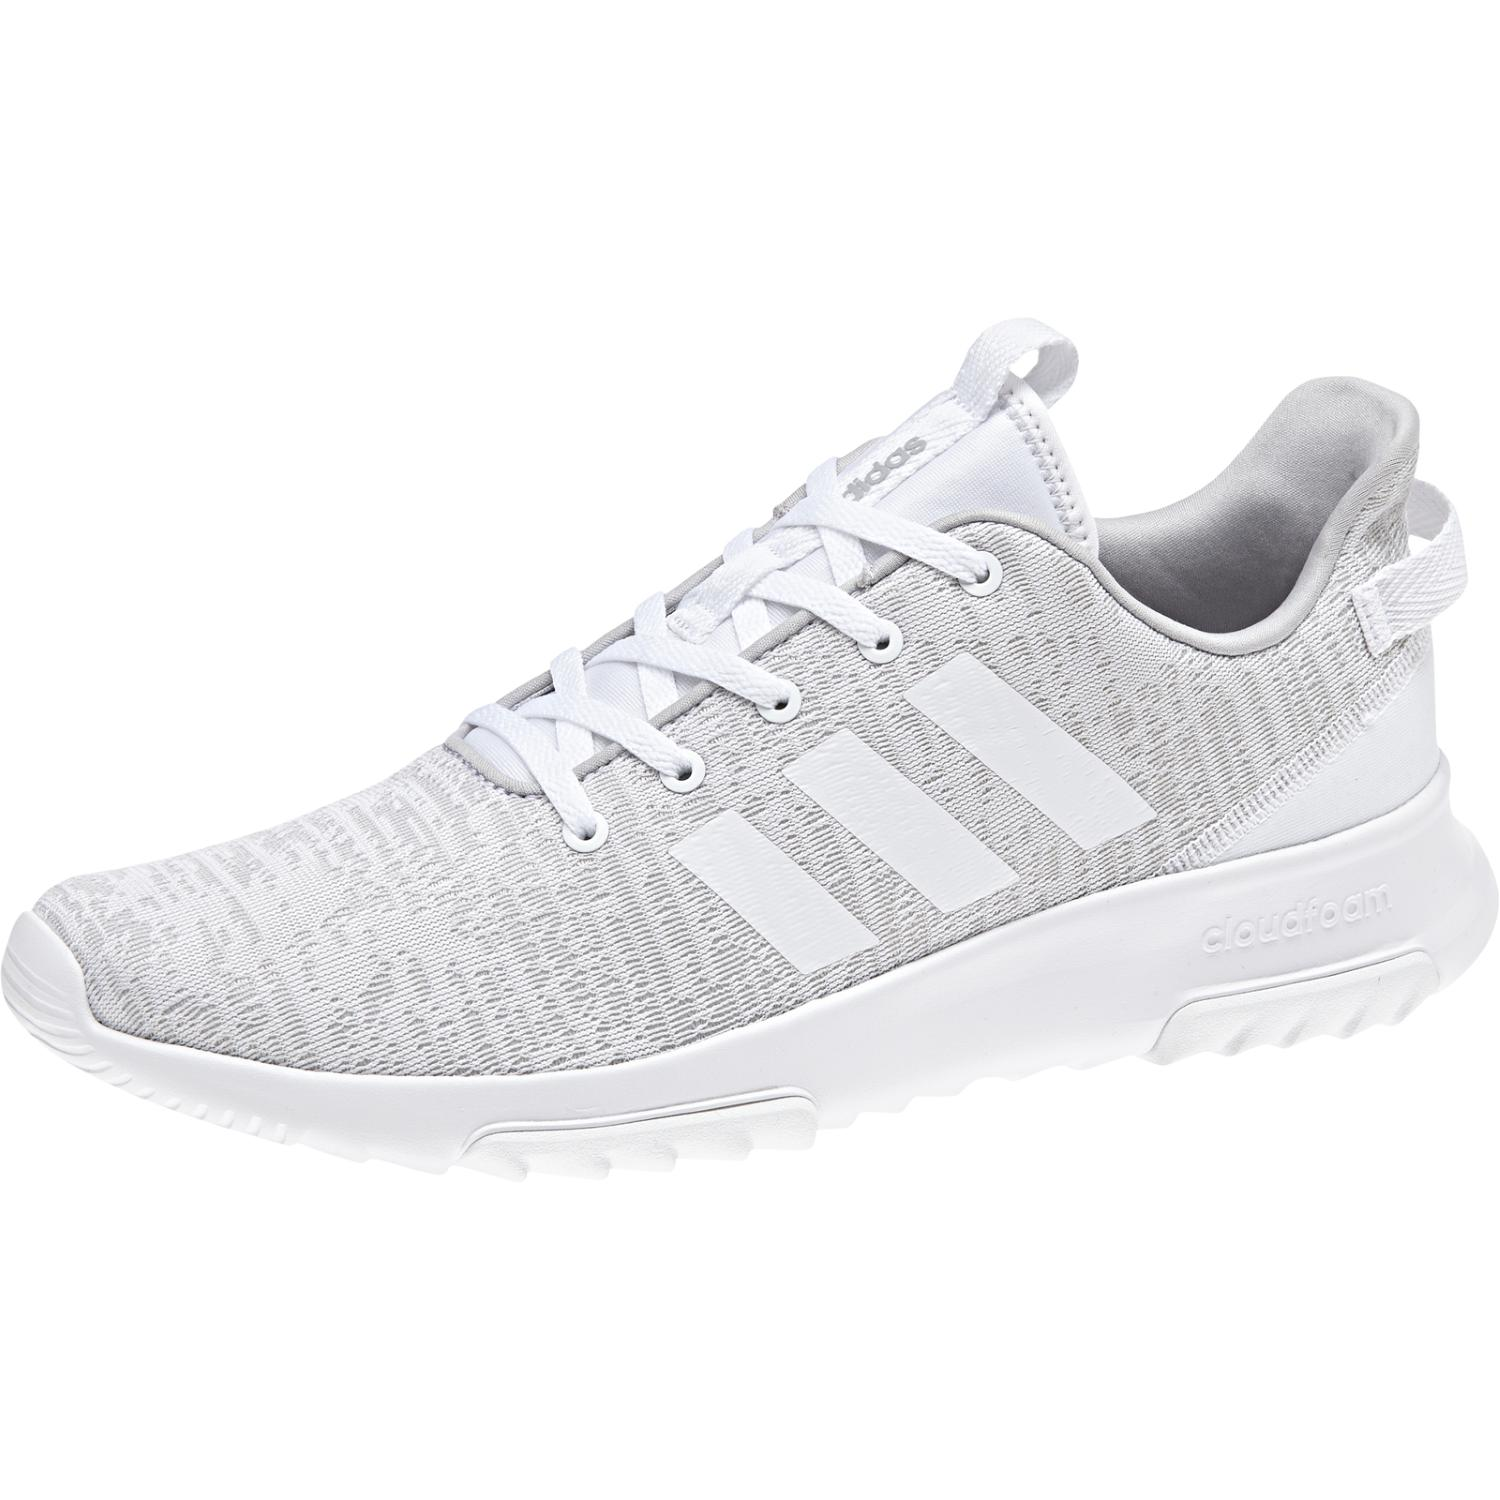 Lyst - Adidas Cloudfoam Racer Tr Shoes in Gray for Men 780e47d0a